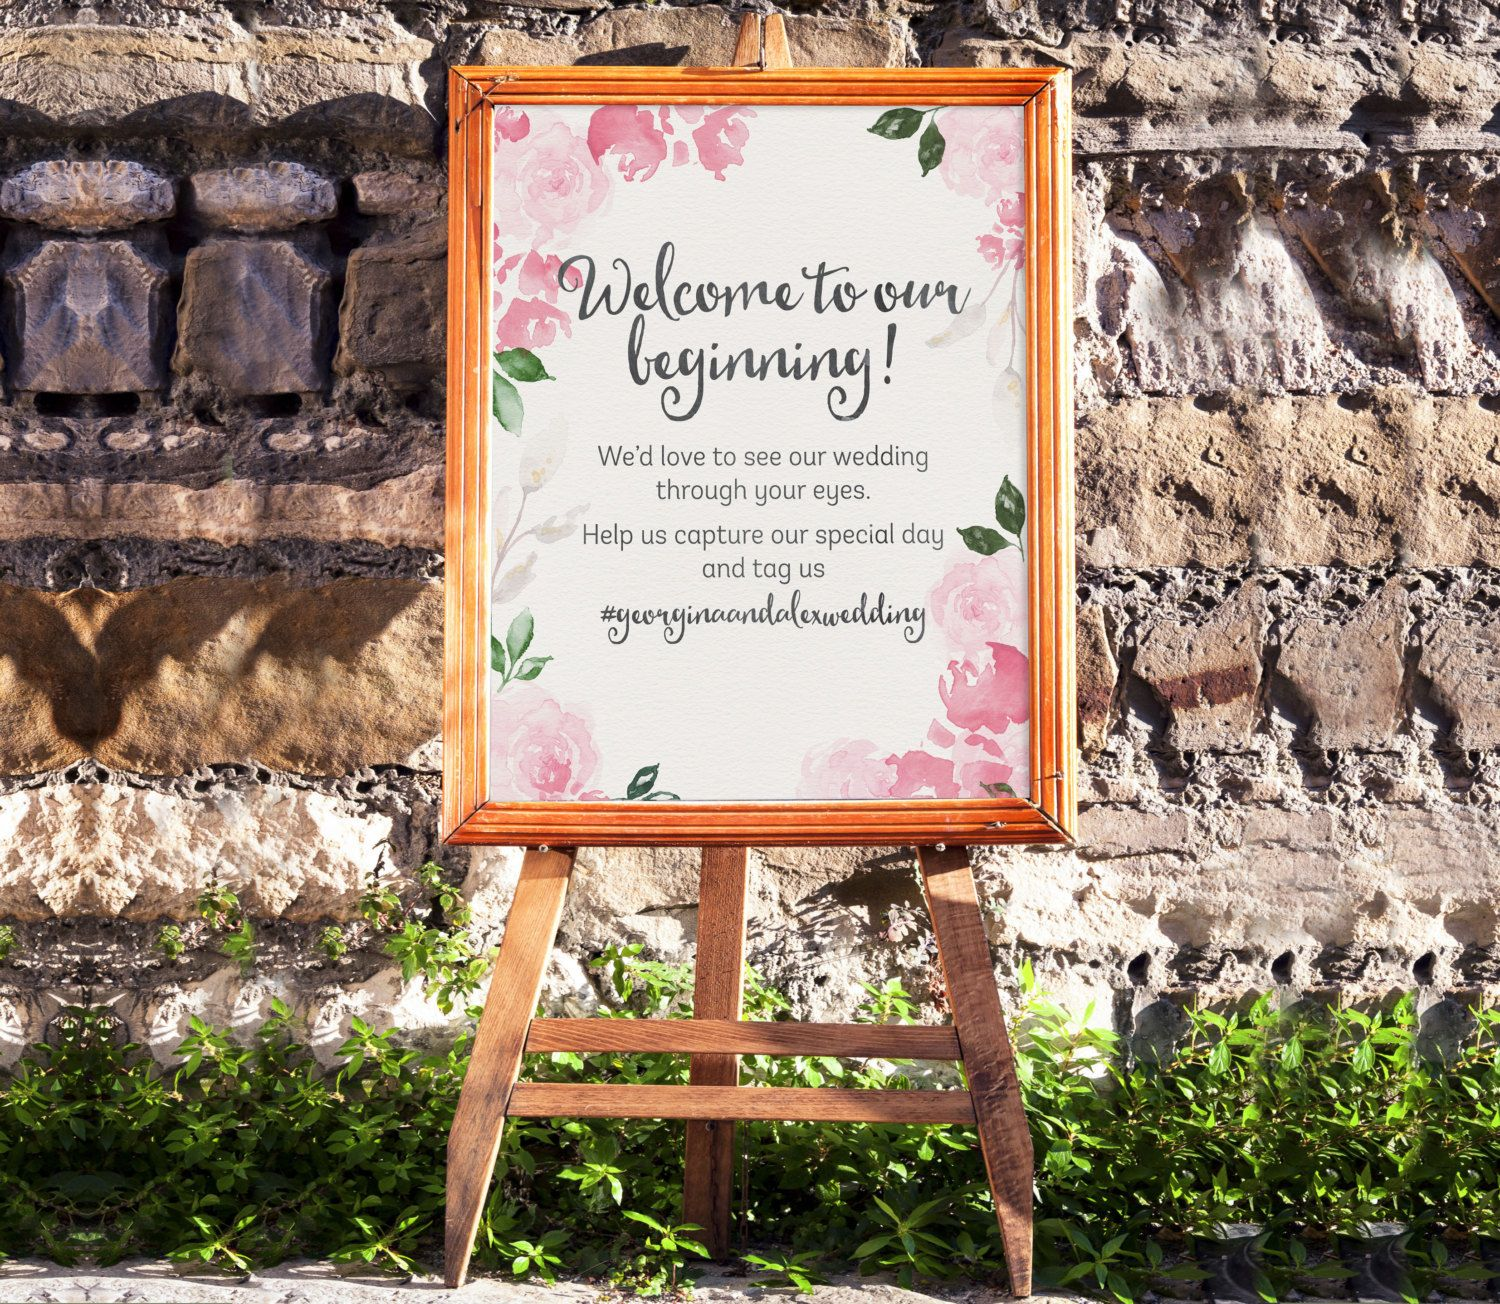 Wallpaper hd diy wedding easel of iphone pics hashtag sign instant printable